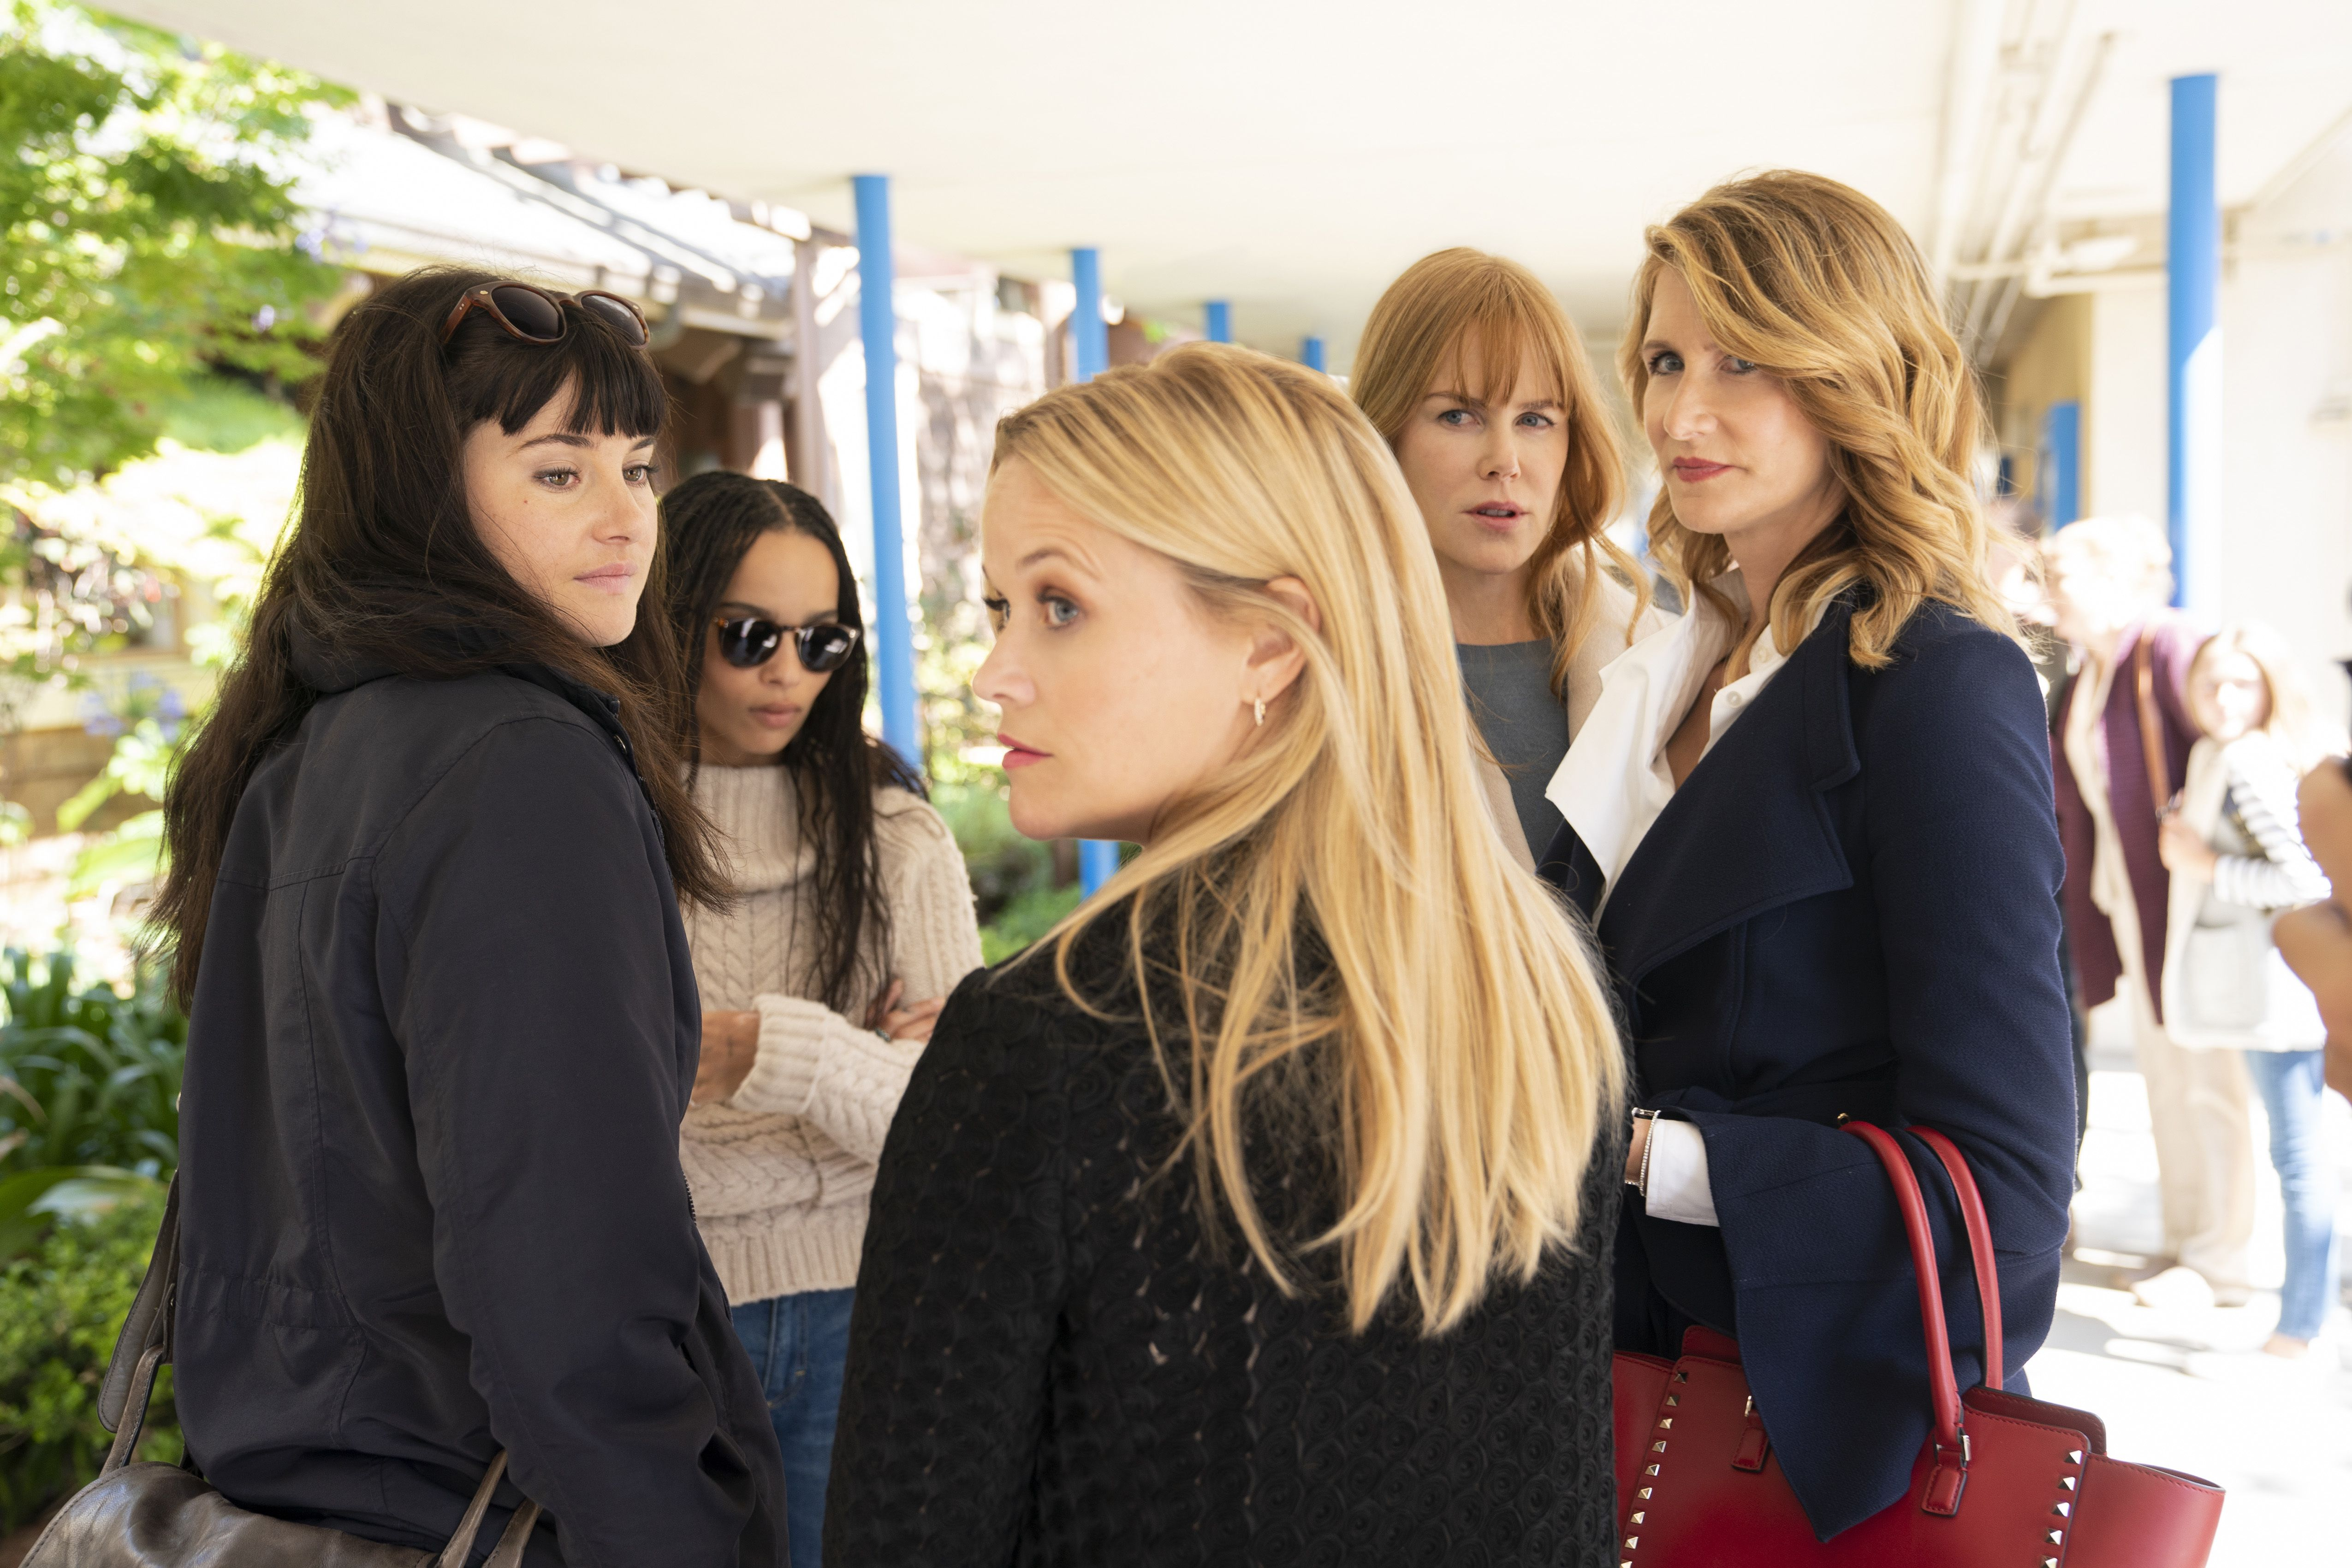 If You Just Can't Get Enough of 'Big Little Lies', Here Are 12 More Shows For Ya